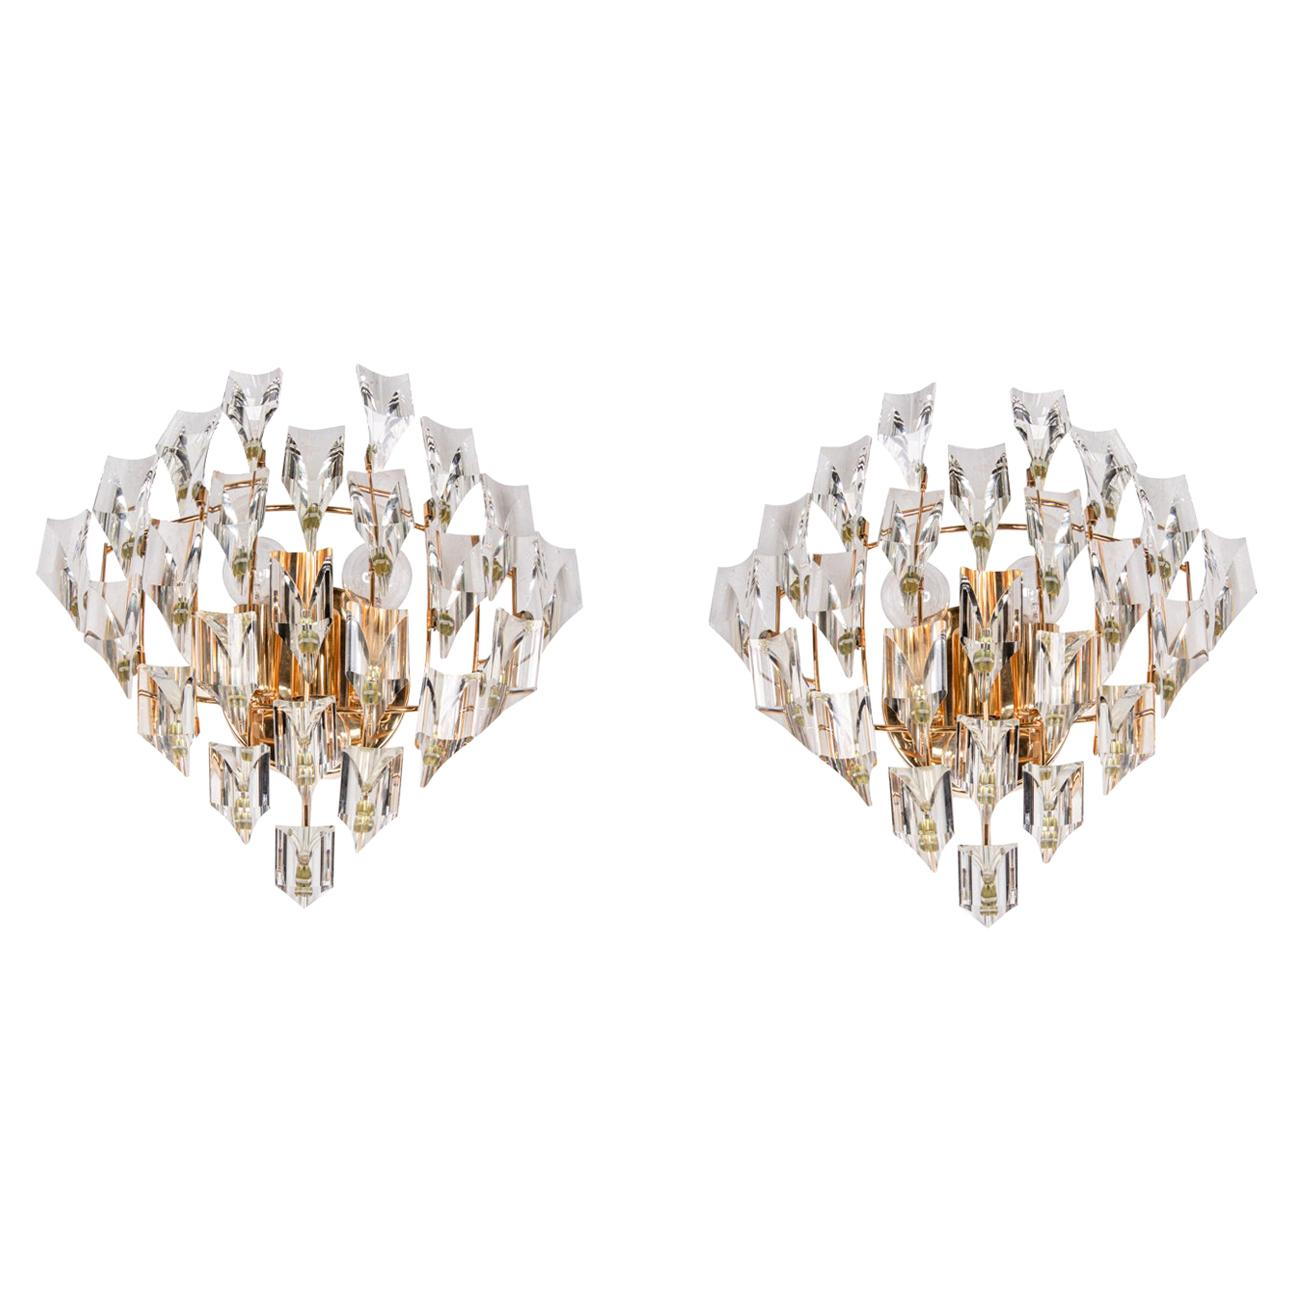 Pair of Crystal & Gold Plated Wall Lights by Oscar Torlasco for Stilkronen 1970s